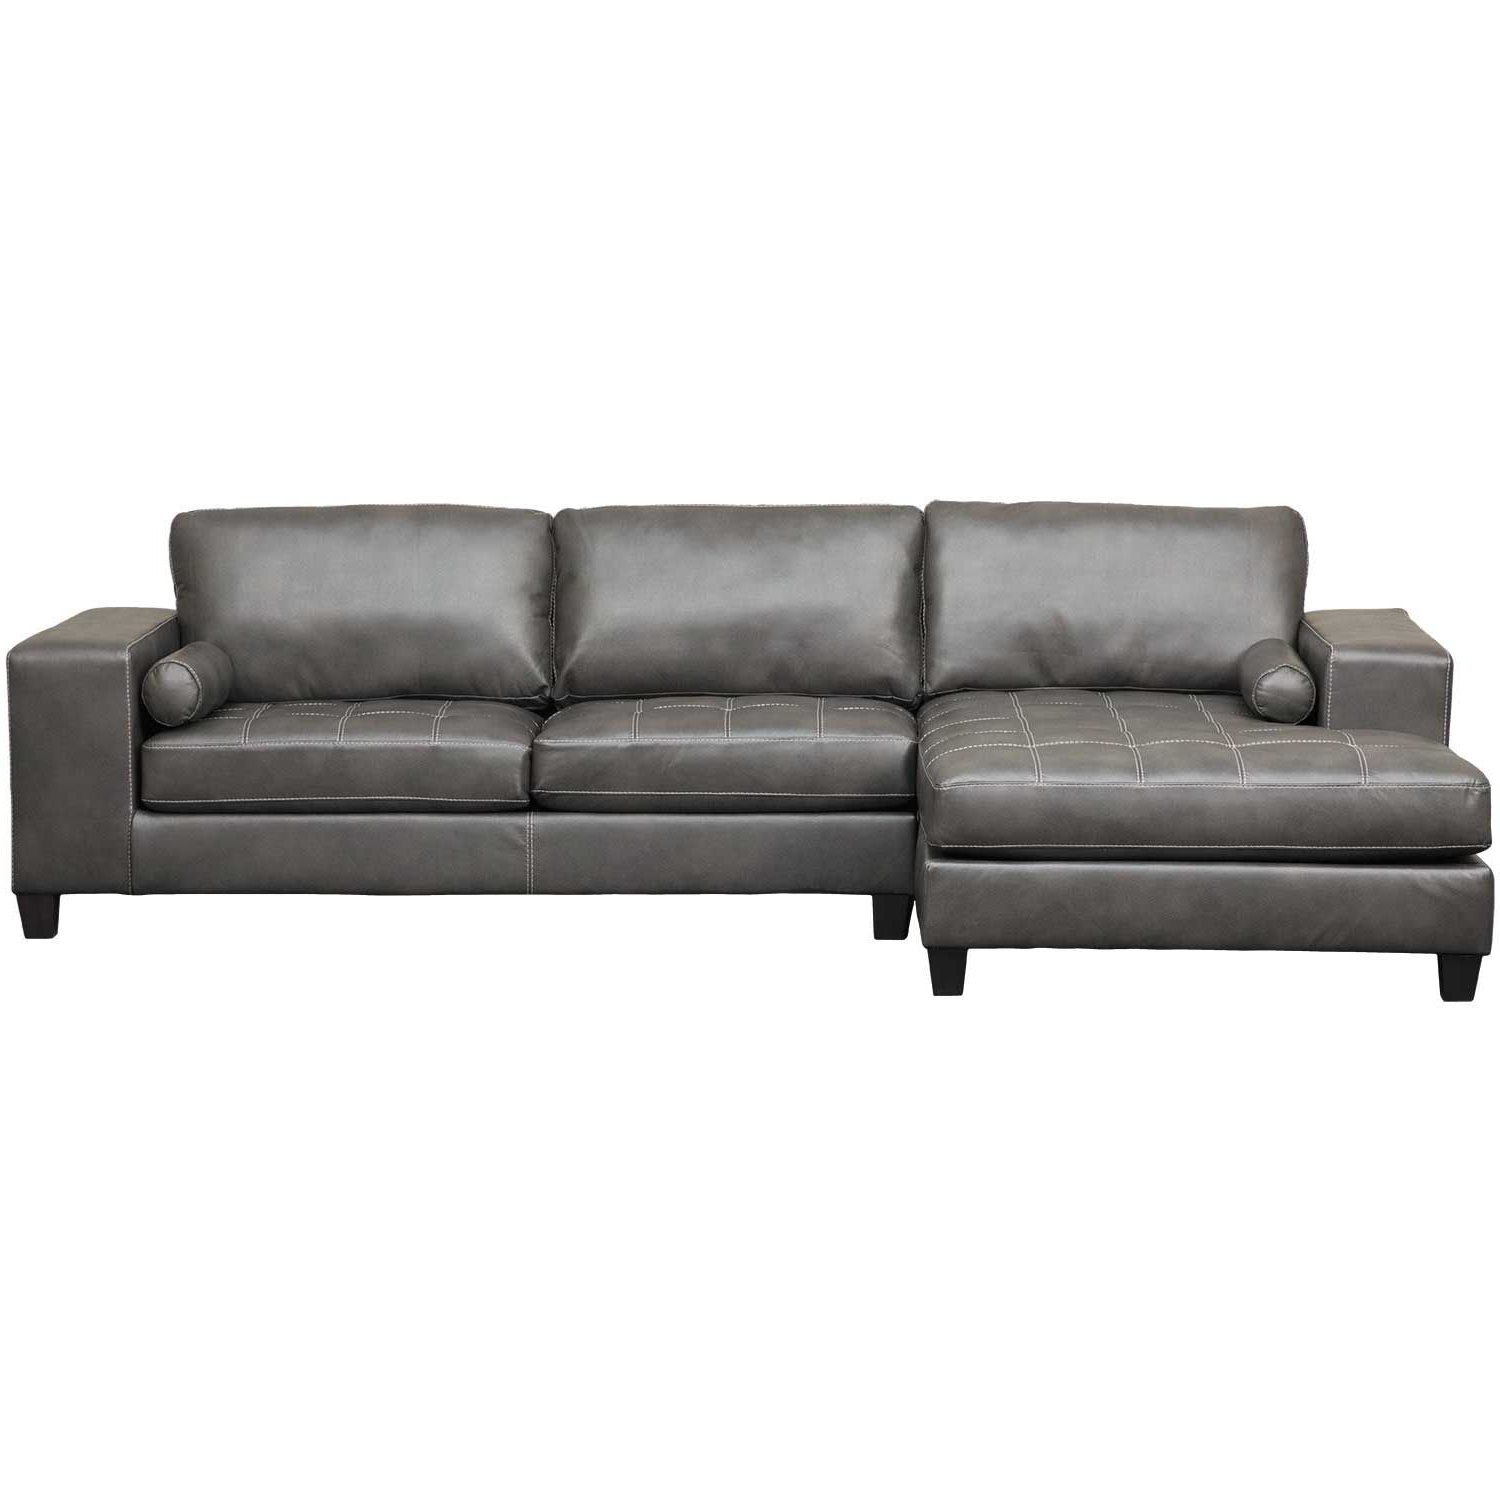 Tatum Dark Grey 2 Piece Sectionals With Laf Chaise Regarding Famous White Chaise Sofa Bed (Gallery 16 of 20)